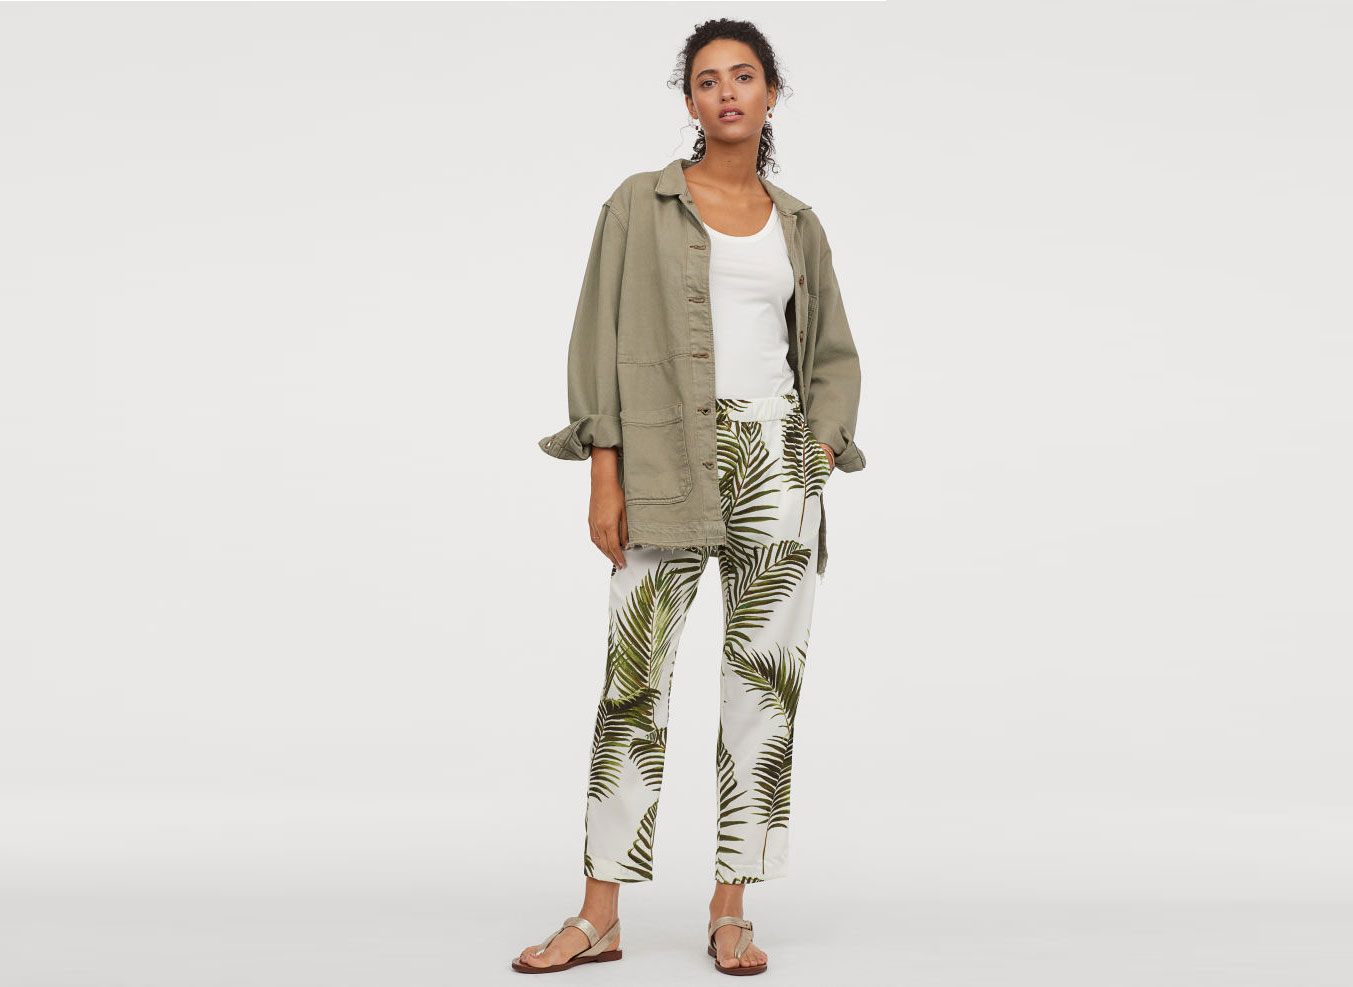 H&M Palm Print Crêped Pants